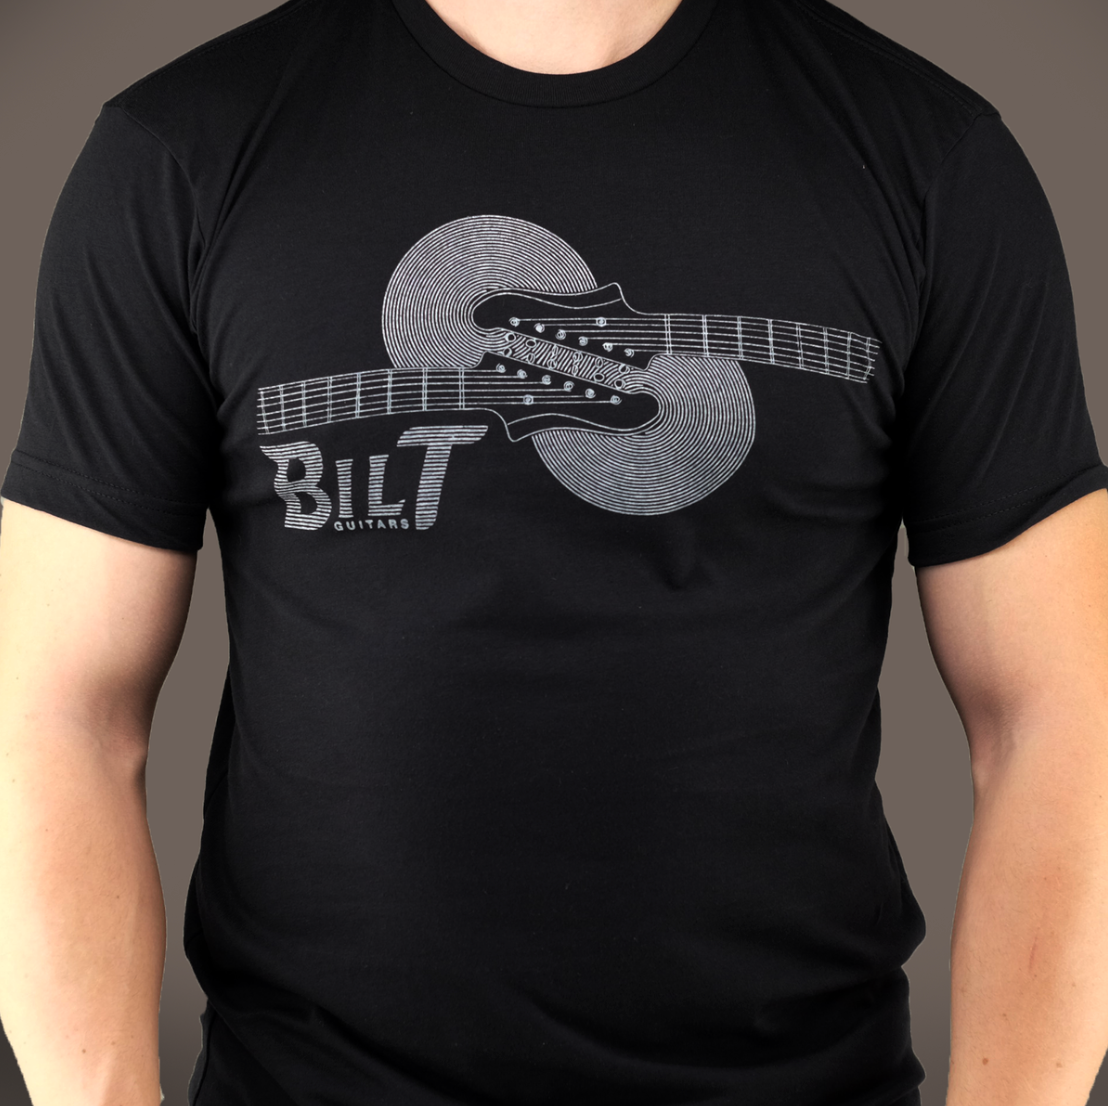 Horizontal Headstock T-Shirt, Black